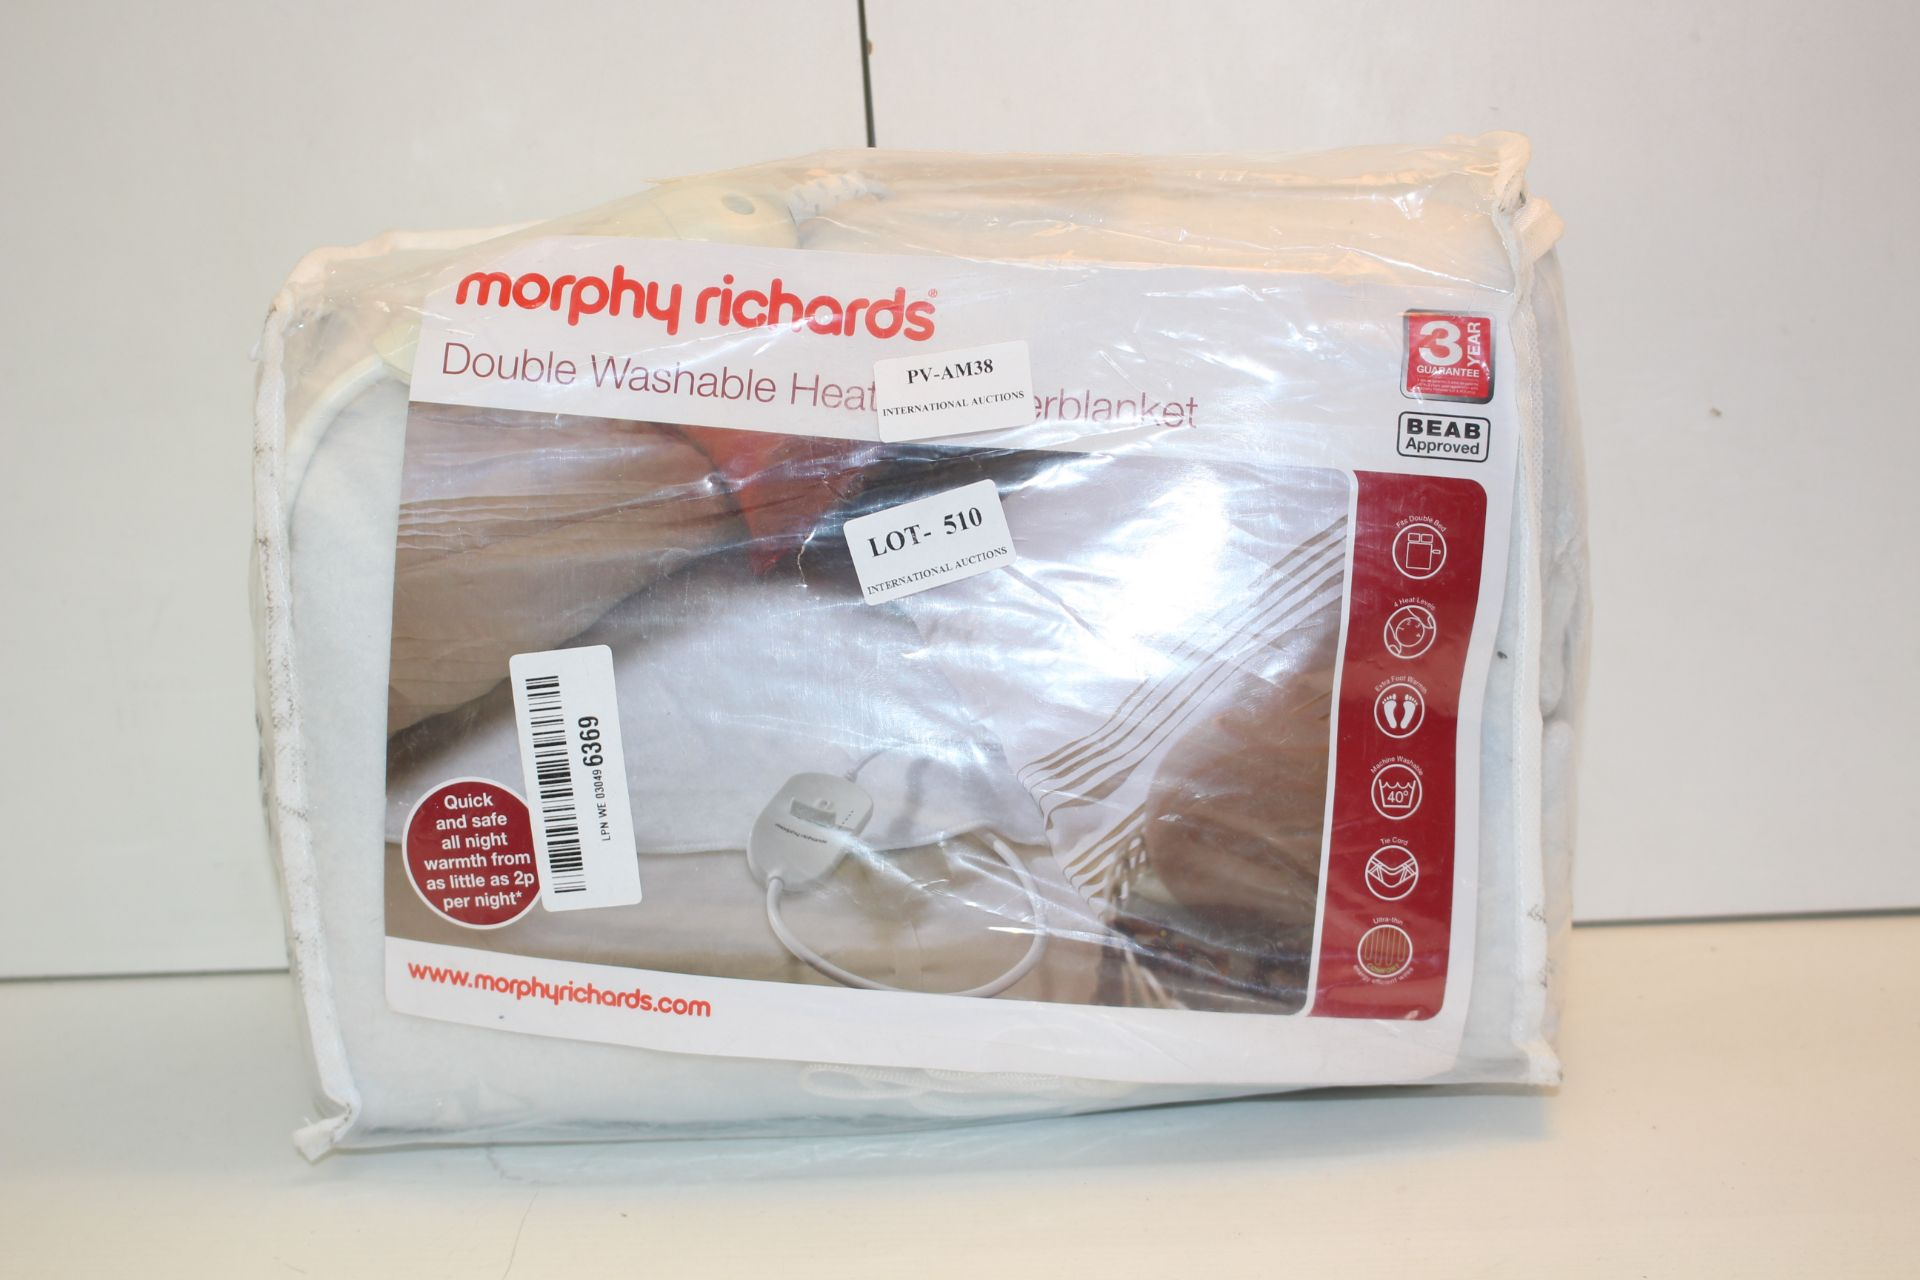 MORPHY RICHARDS DOUBLE WASHABLE HEATED BLANKET Condition ReportAppraisal Available on Request- All